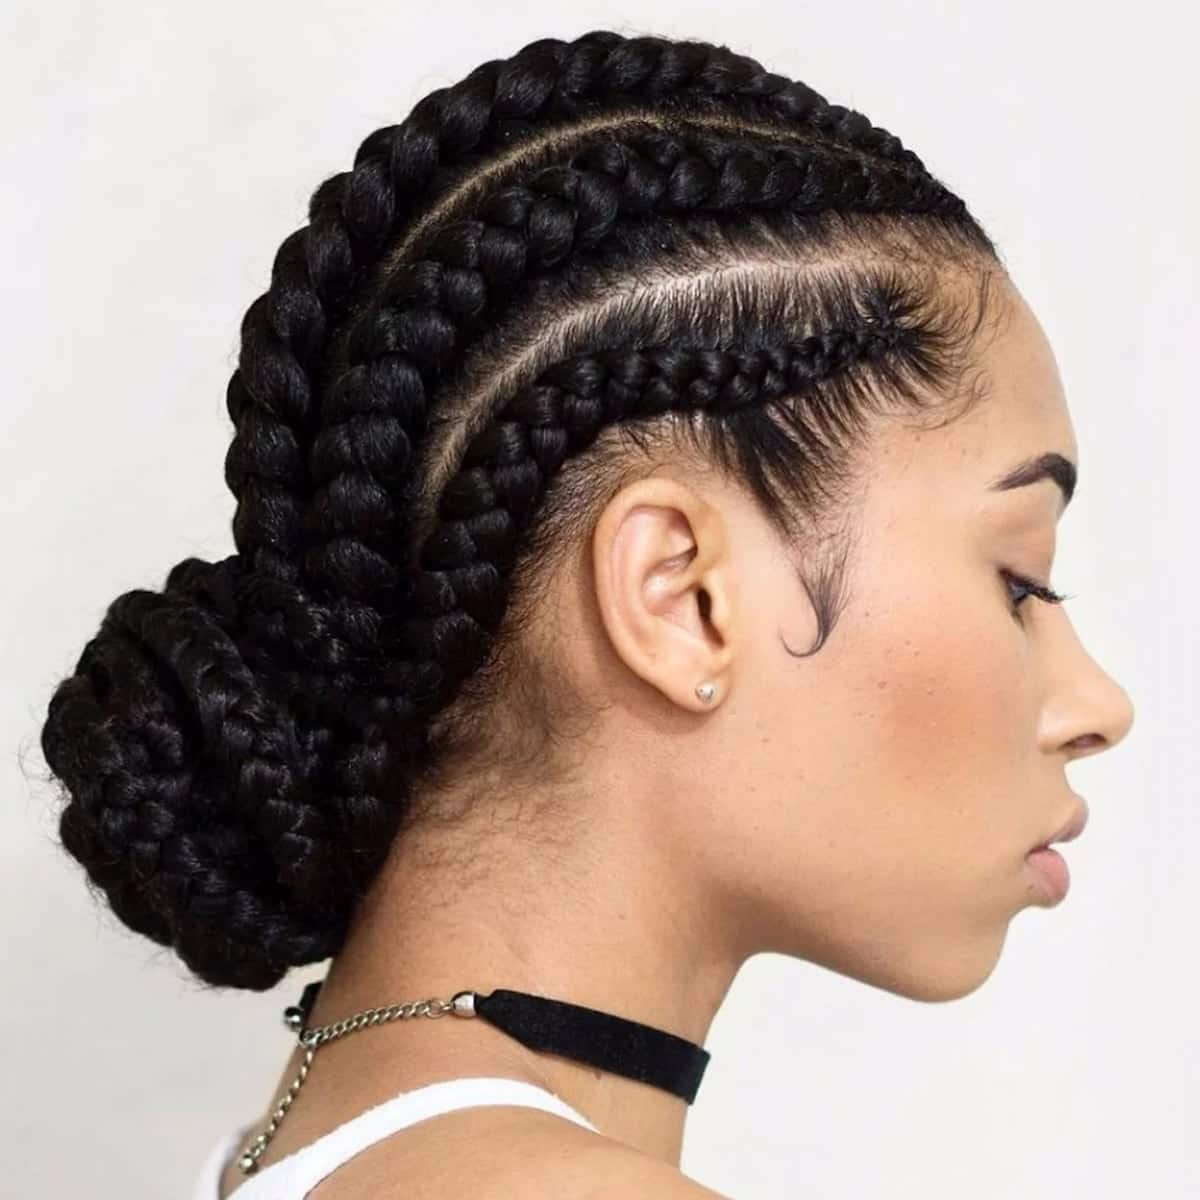 pictures of natural hair braiding styles types of braids and braids hairstyles in yen gh 7921 | 3o3bpd3dags09m7ob